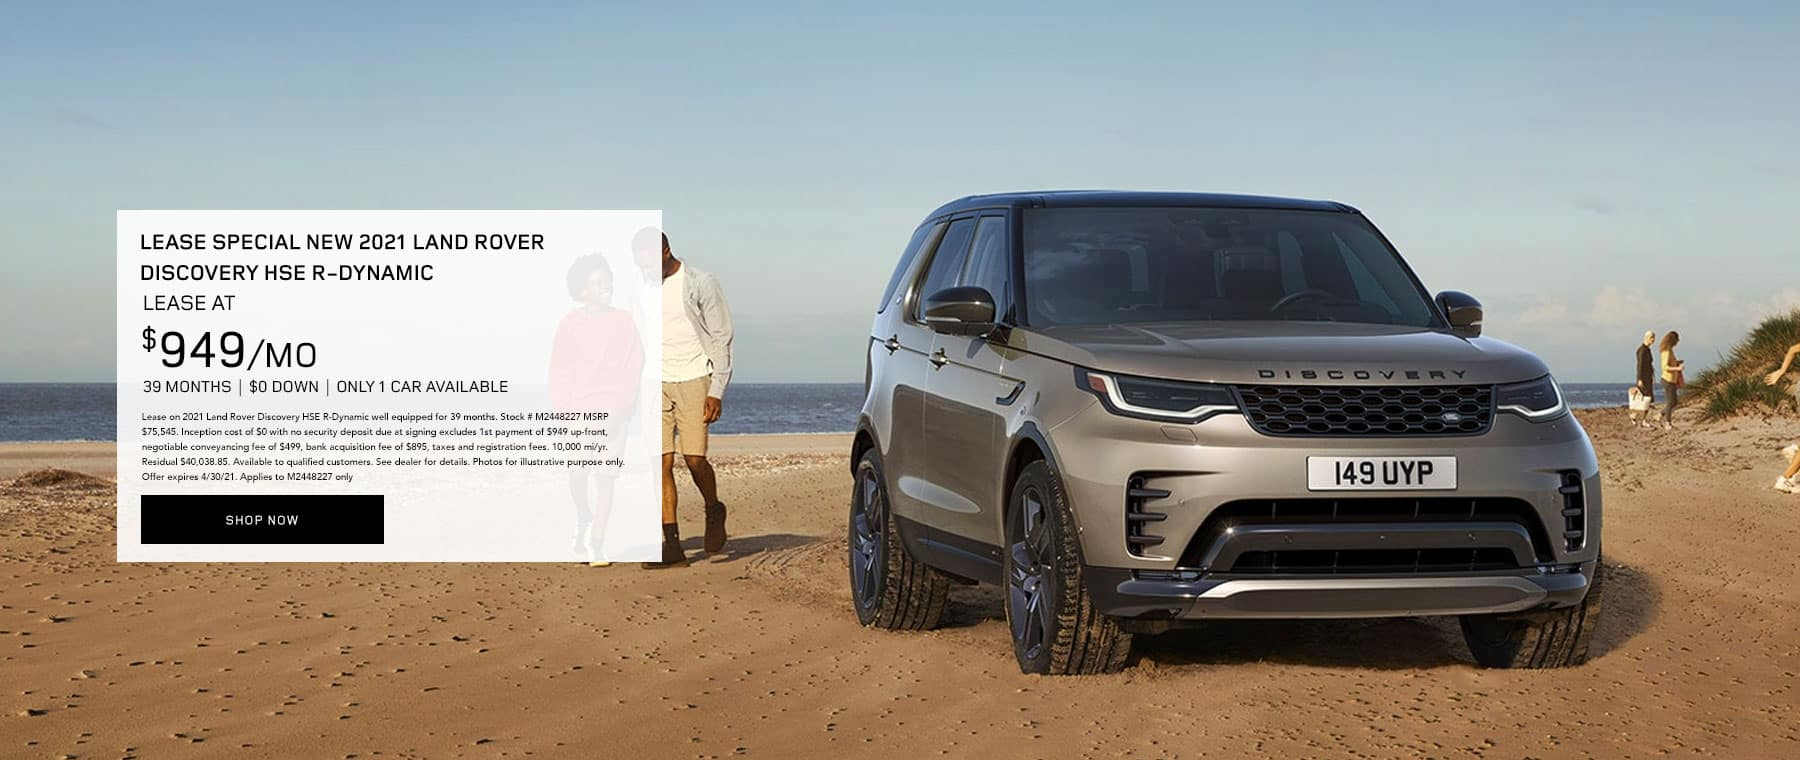 LEASE SPECIAL 2021 Land Rover Discovery HSE R-Dynamic – only 1 car available